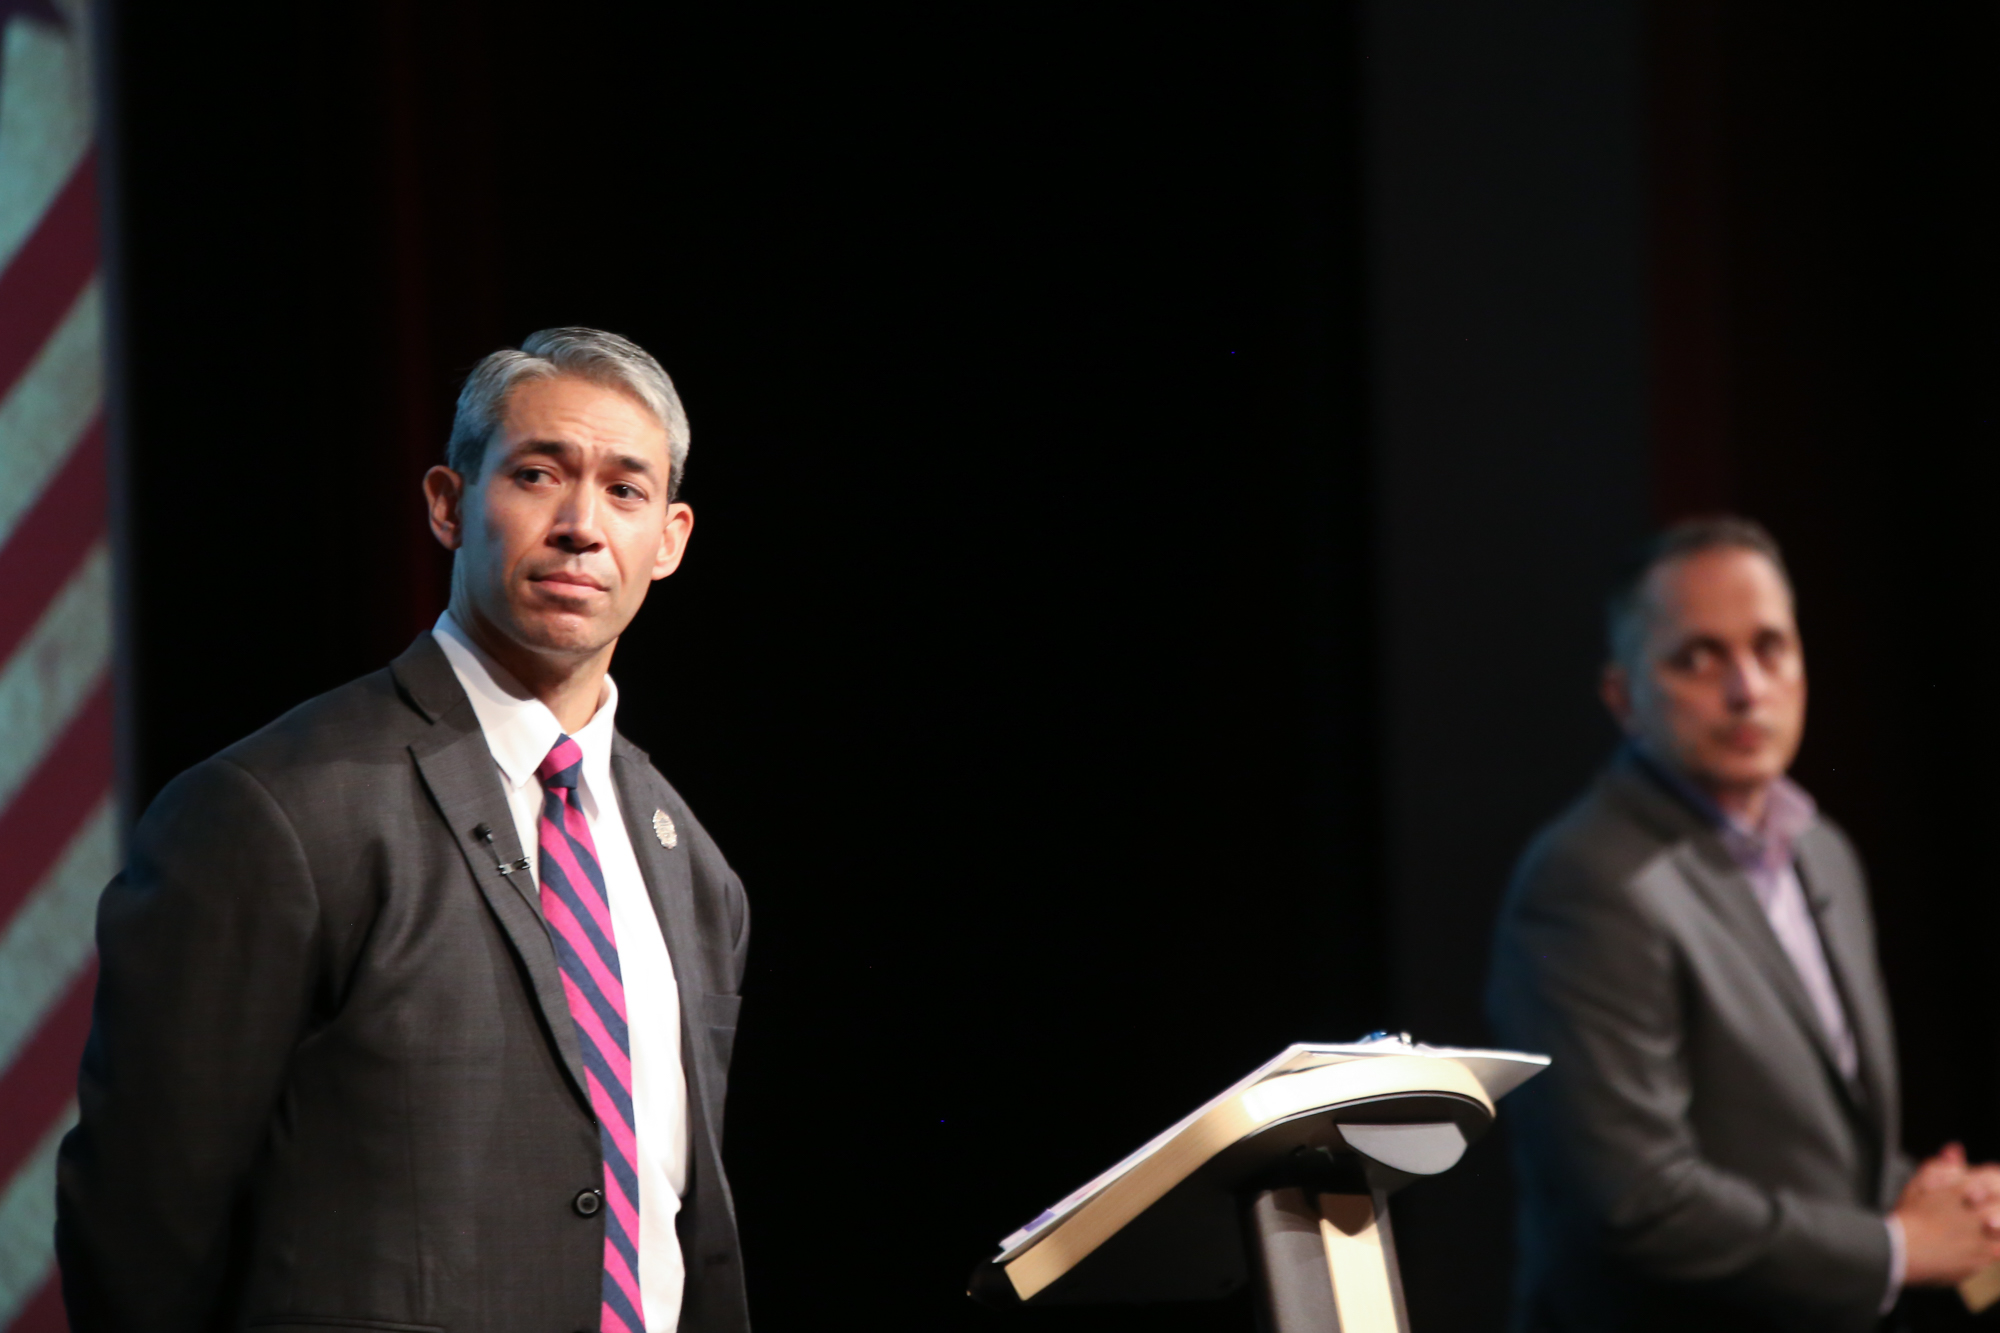 Mayor Ron Nirenberg and Candidate Greg Brockhouse prepare to face off in the AARP Debate. (Photo Credit:  GA Media Productions )